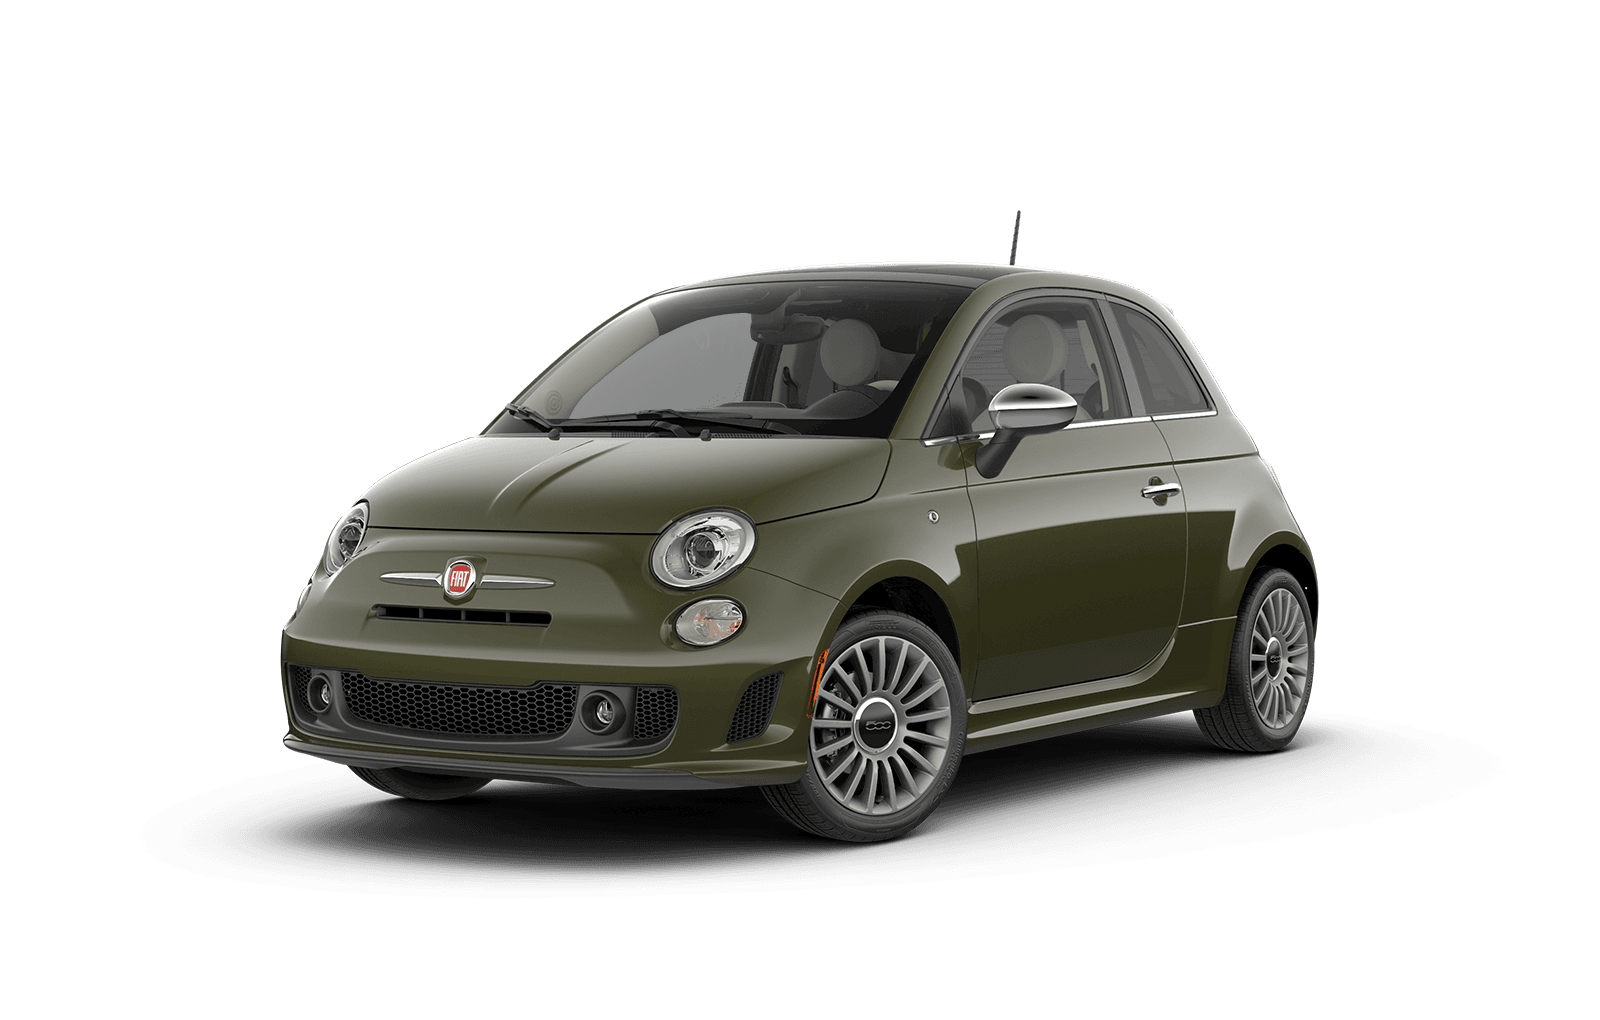 2018 FIAT 500 Full View in Olive Green with Wheels